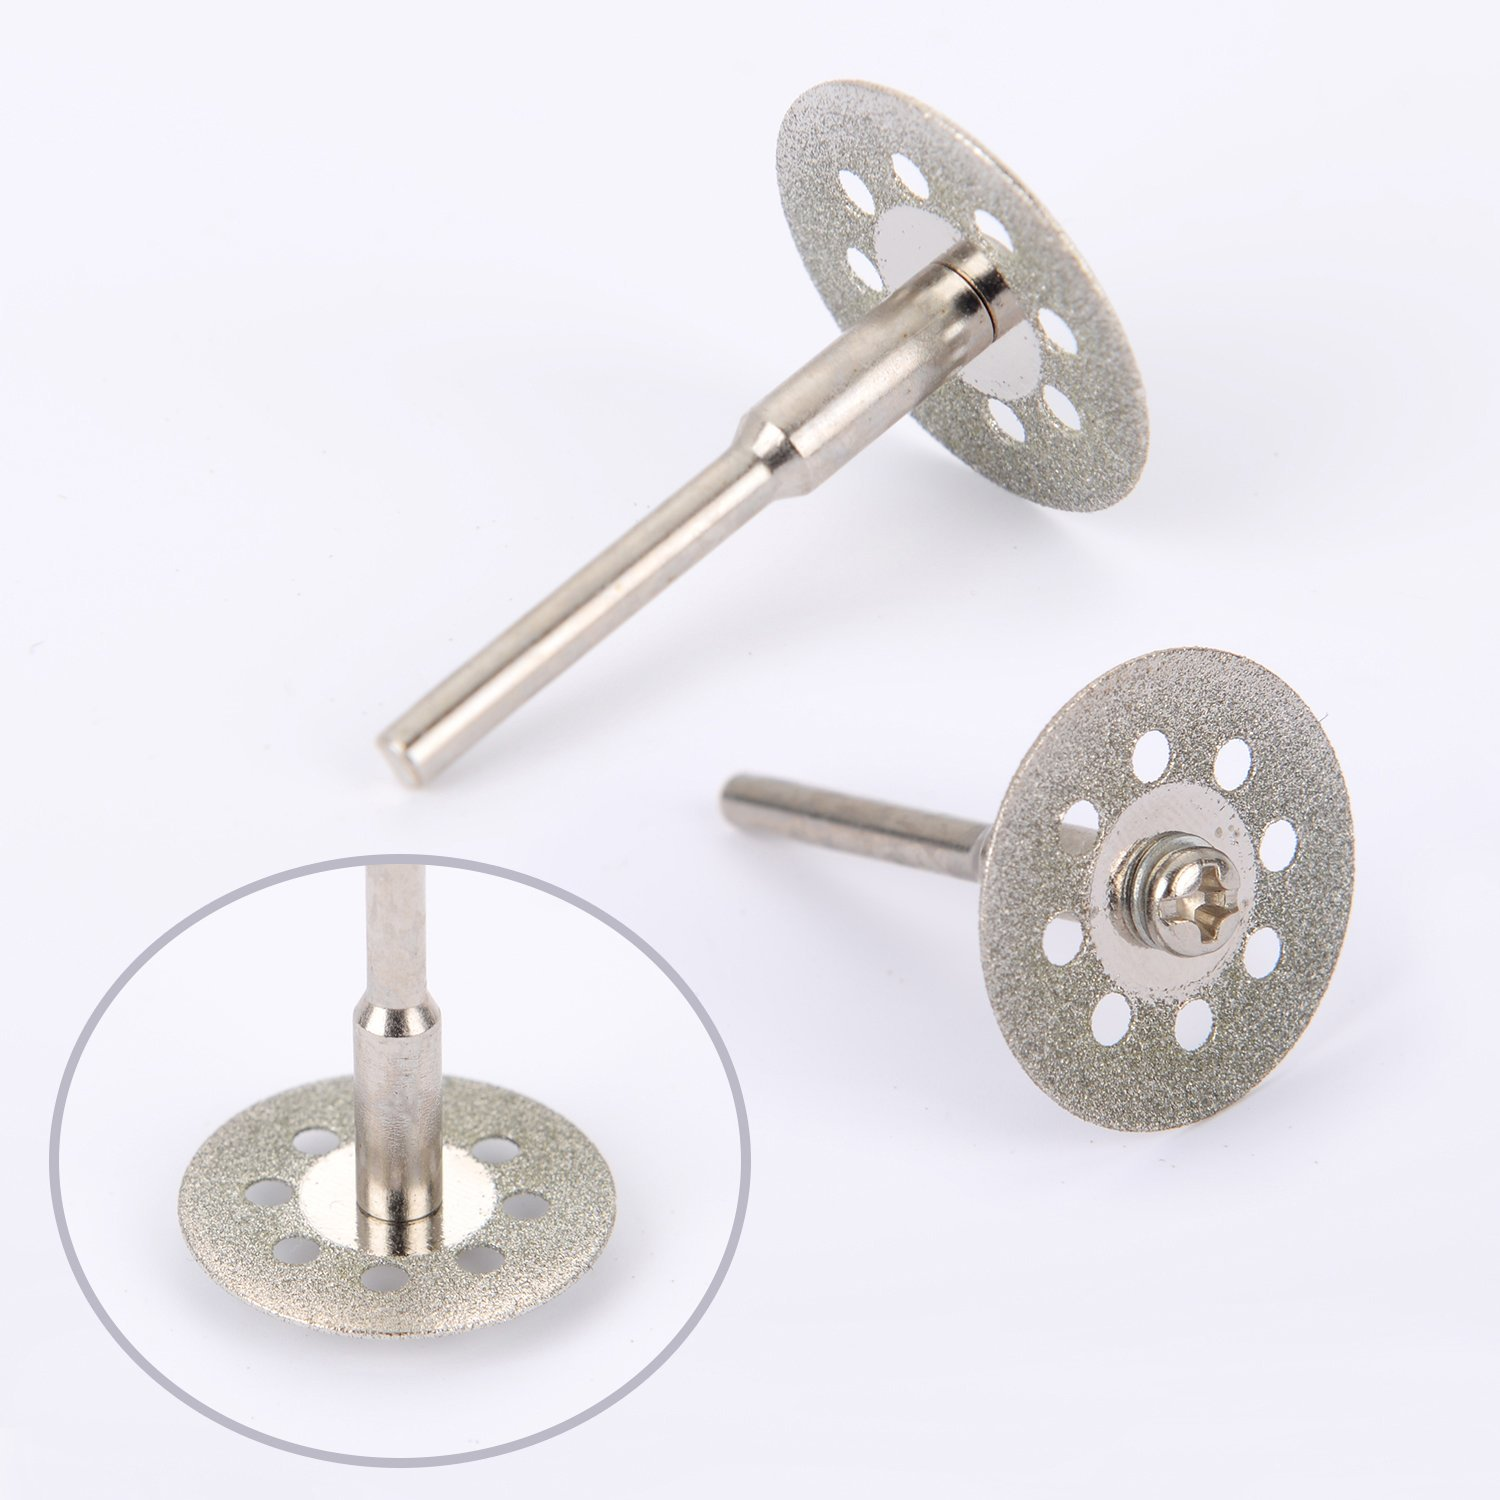 10pcs/set 22mm Mini Diamond Saw Blade Silver Cutting Discs With 2X Connecting Shank For Dremel Drill Fit Rotary Tool D30